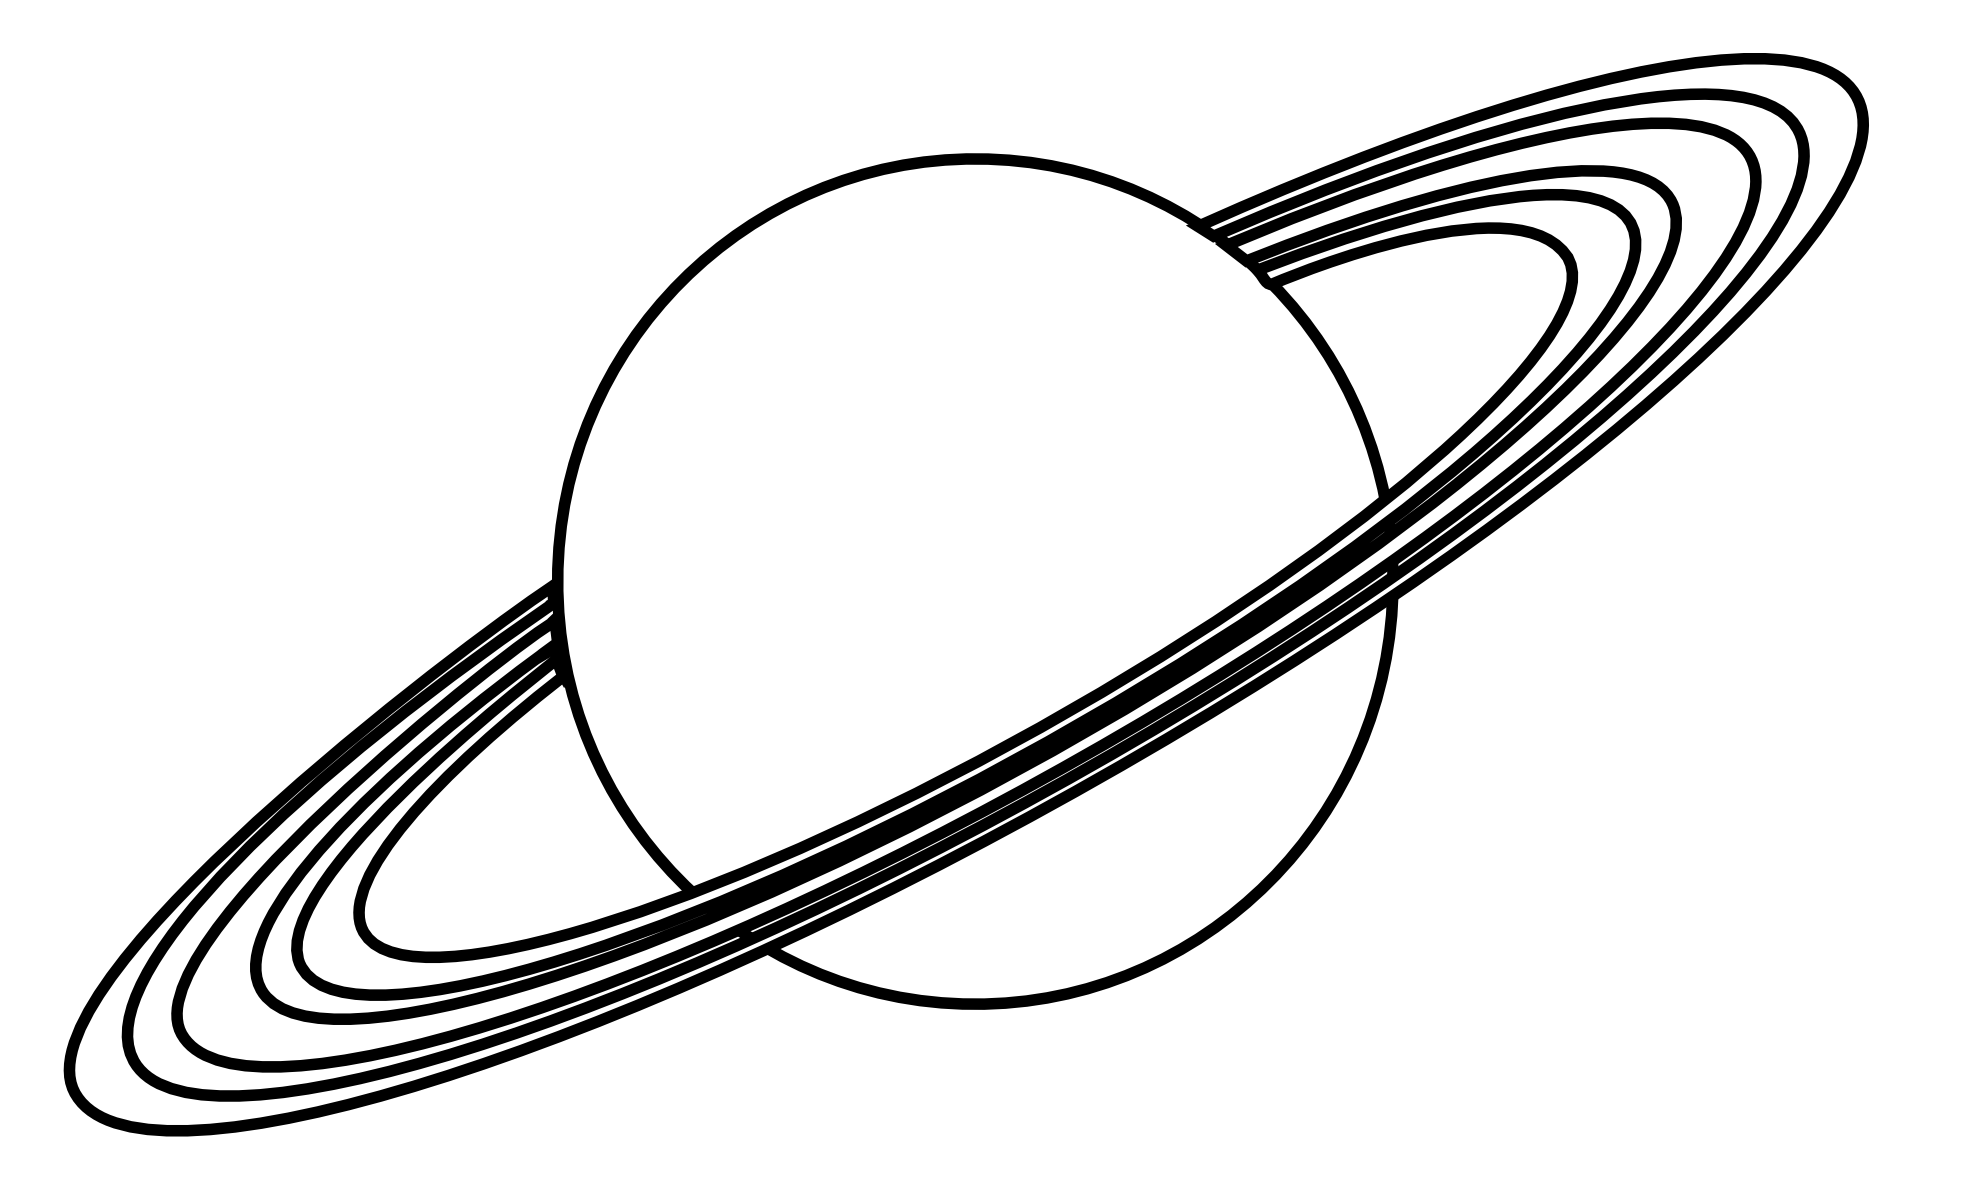 Planets clipart space science #12